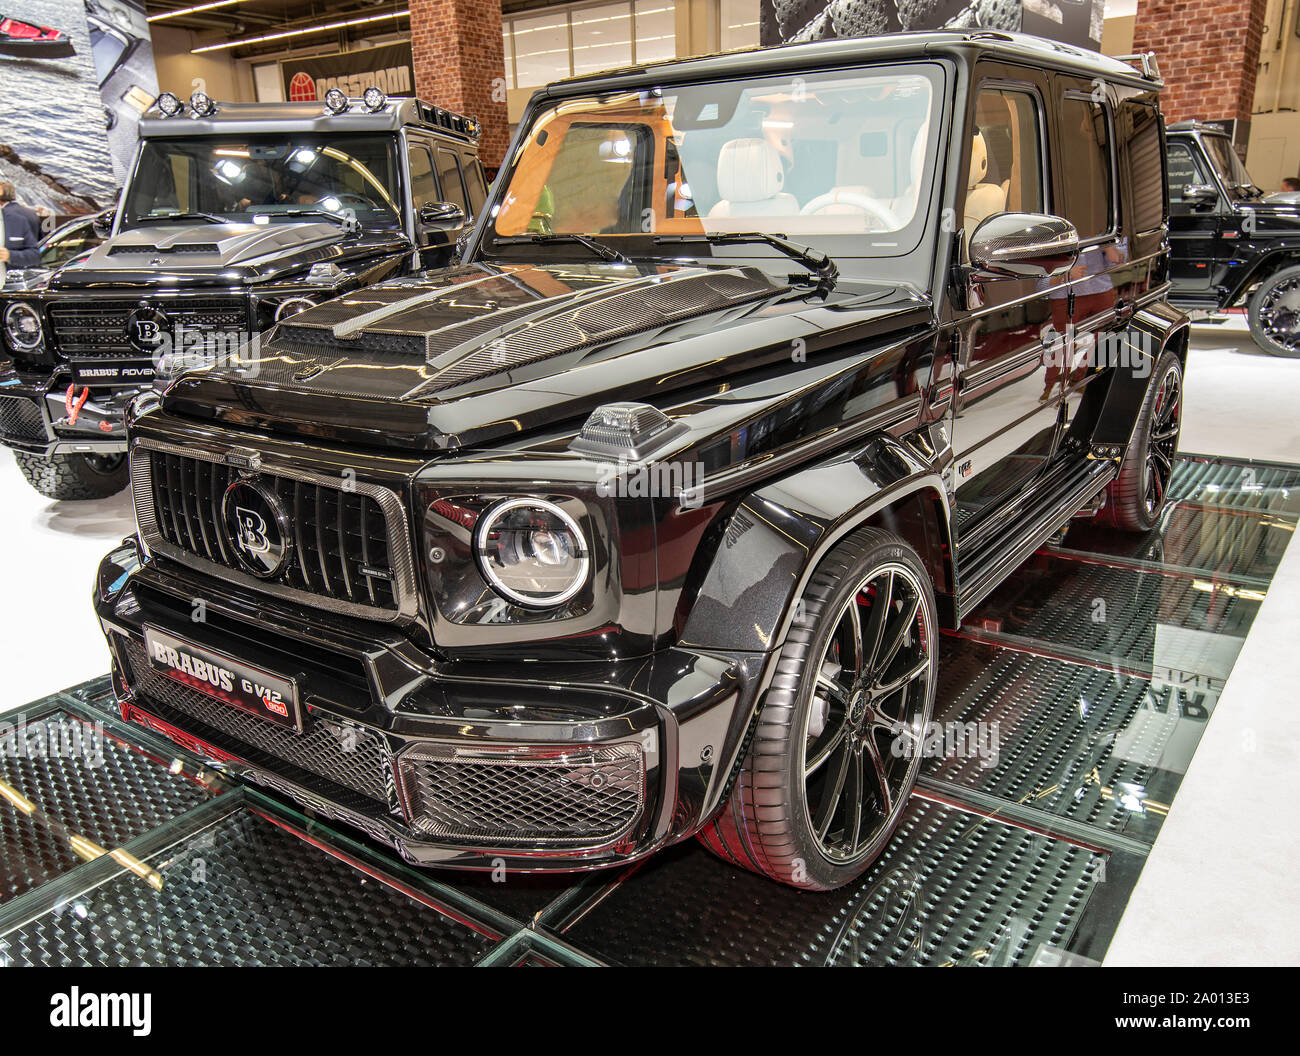 Suv Brabus G V12 900 Based On A Mercedes Amg G 63 With 900 Hp At The Iaa 2019 In Frankfurt Stock Photo Alamy